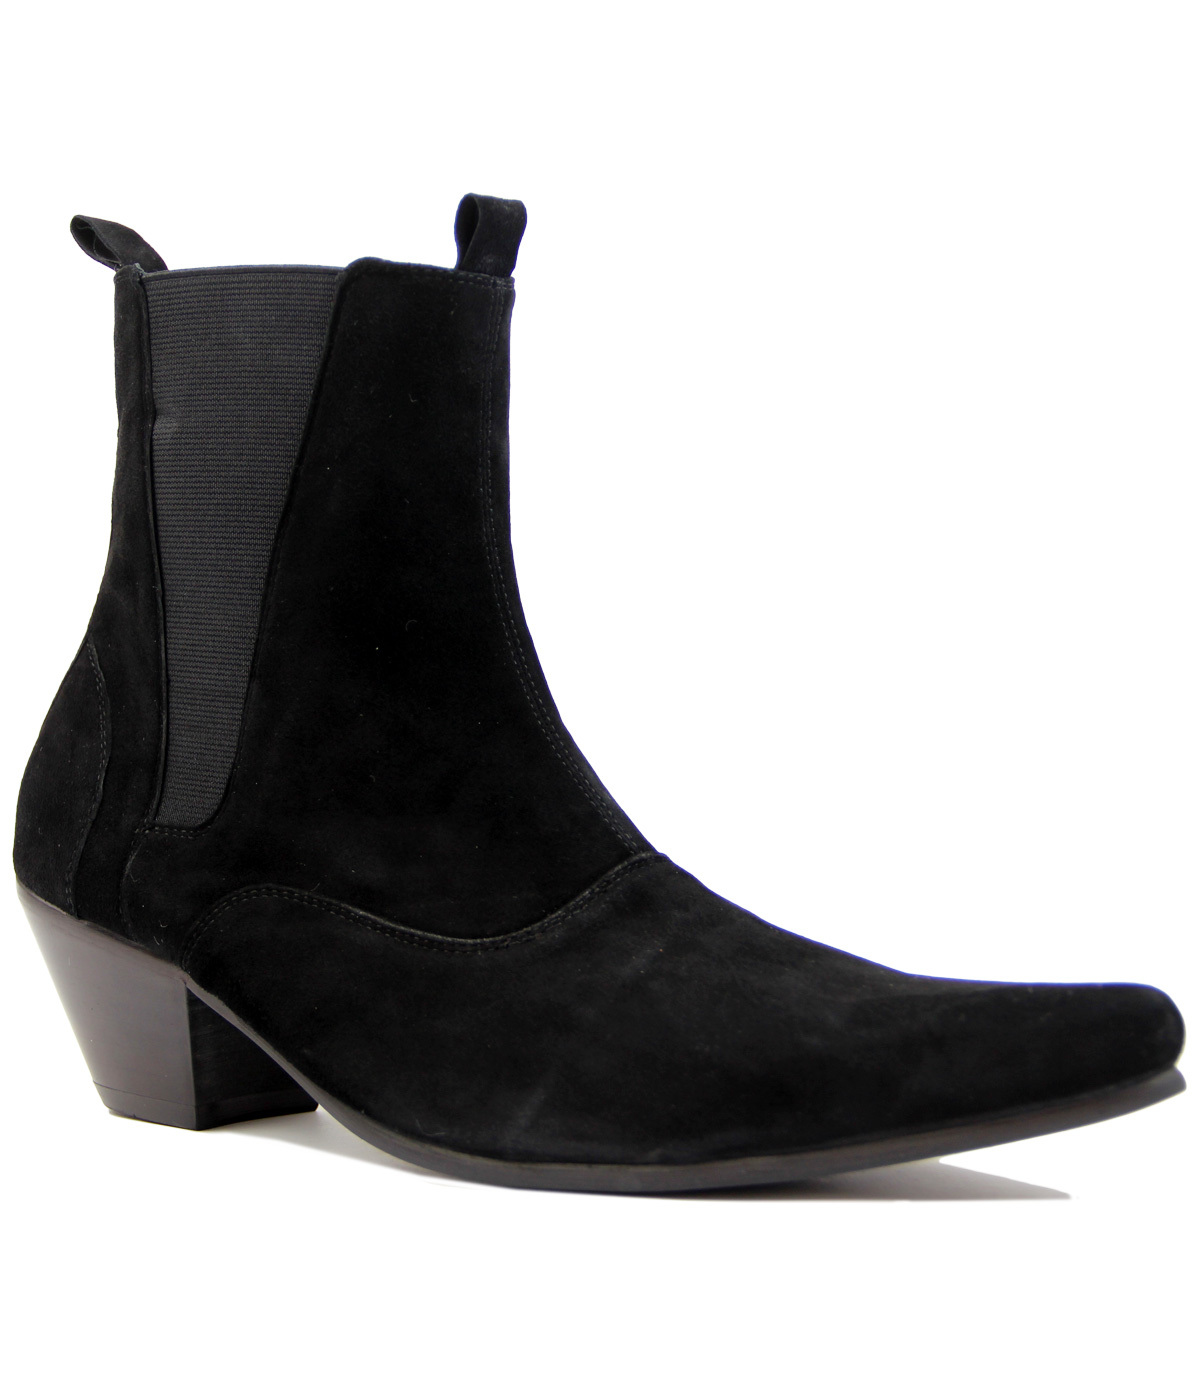 Outlaw MADCAP ENGLAND Mod Cuban Chelsea Boots (BS)